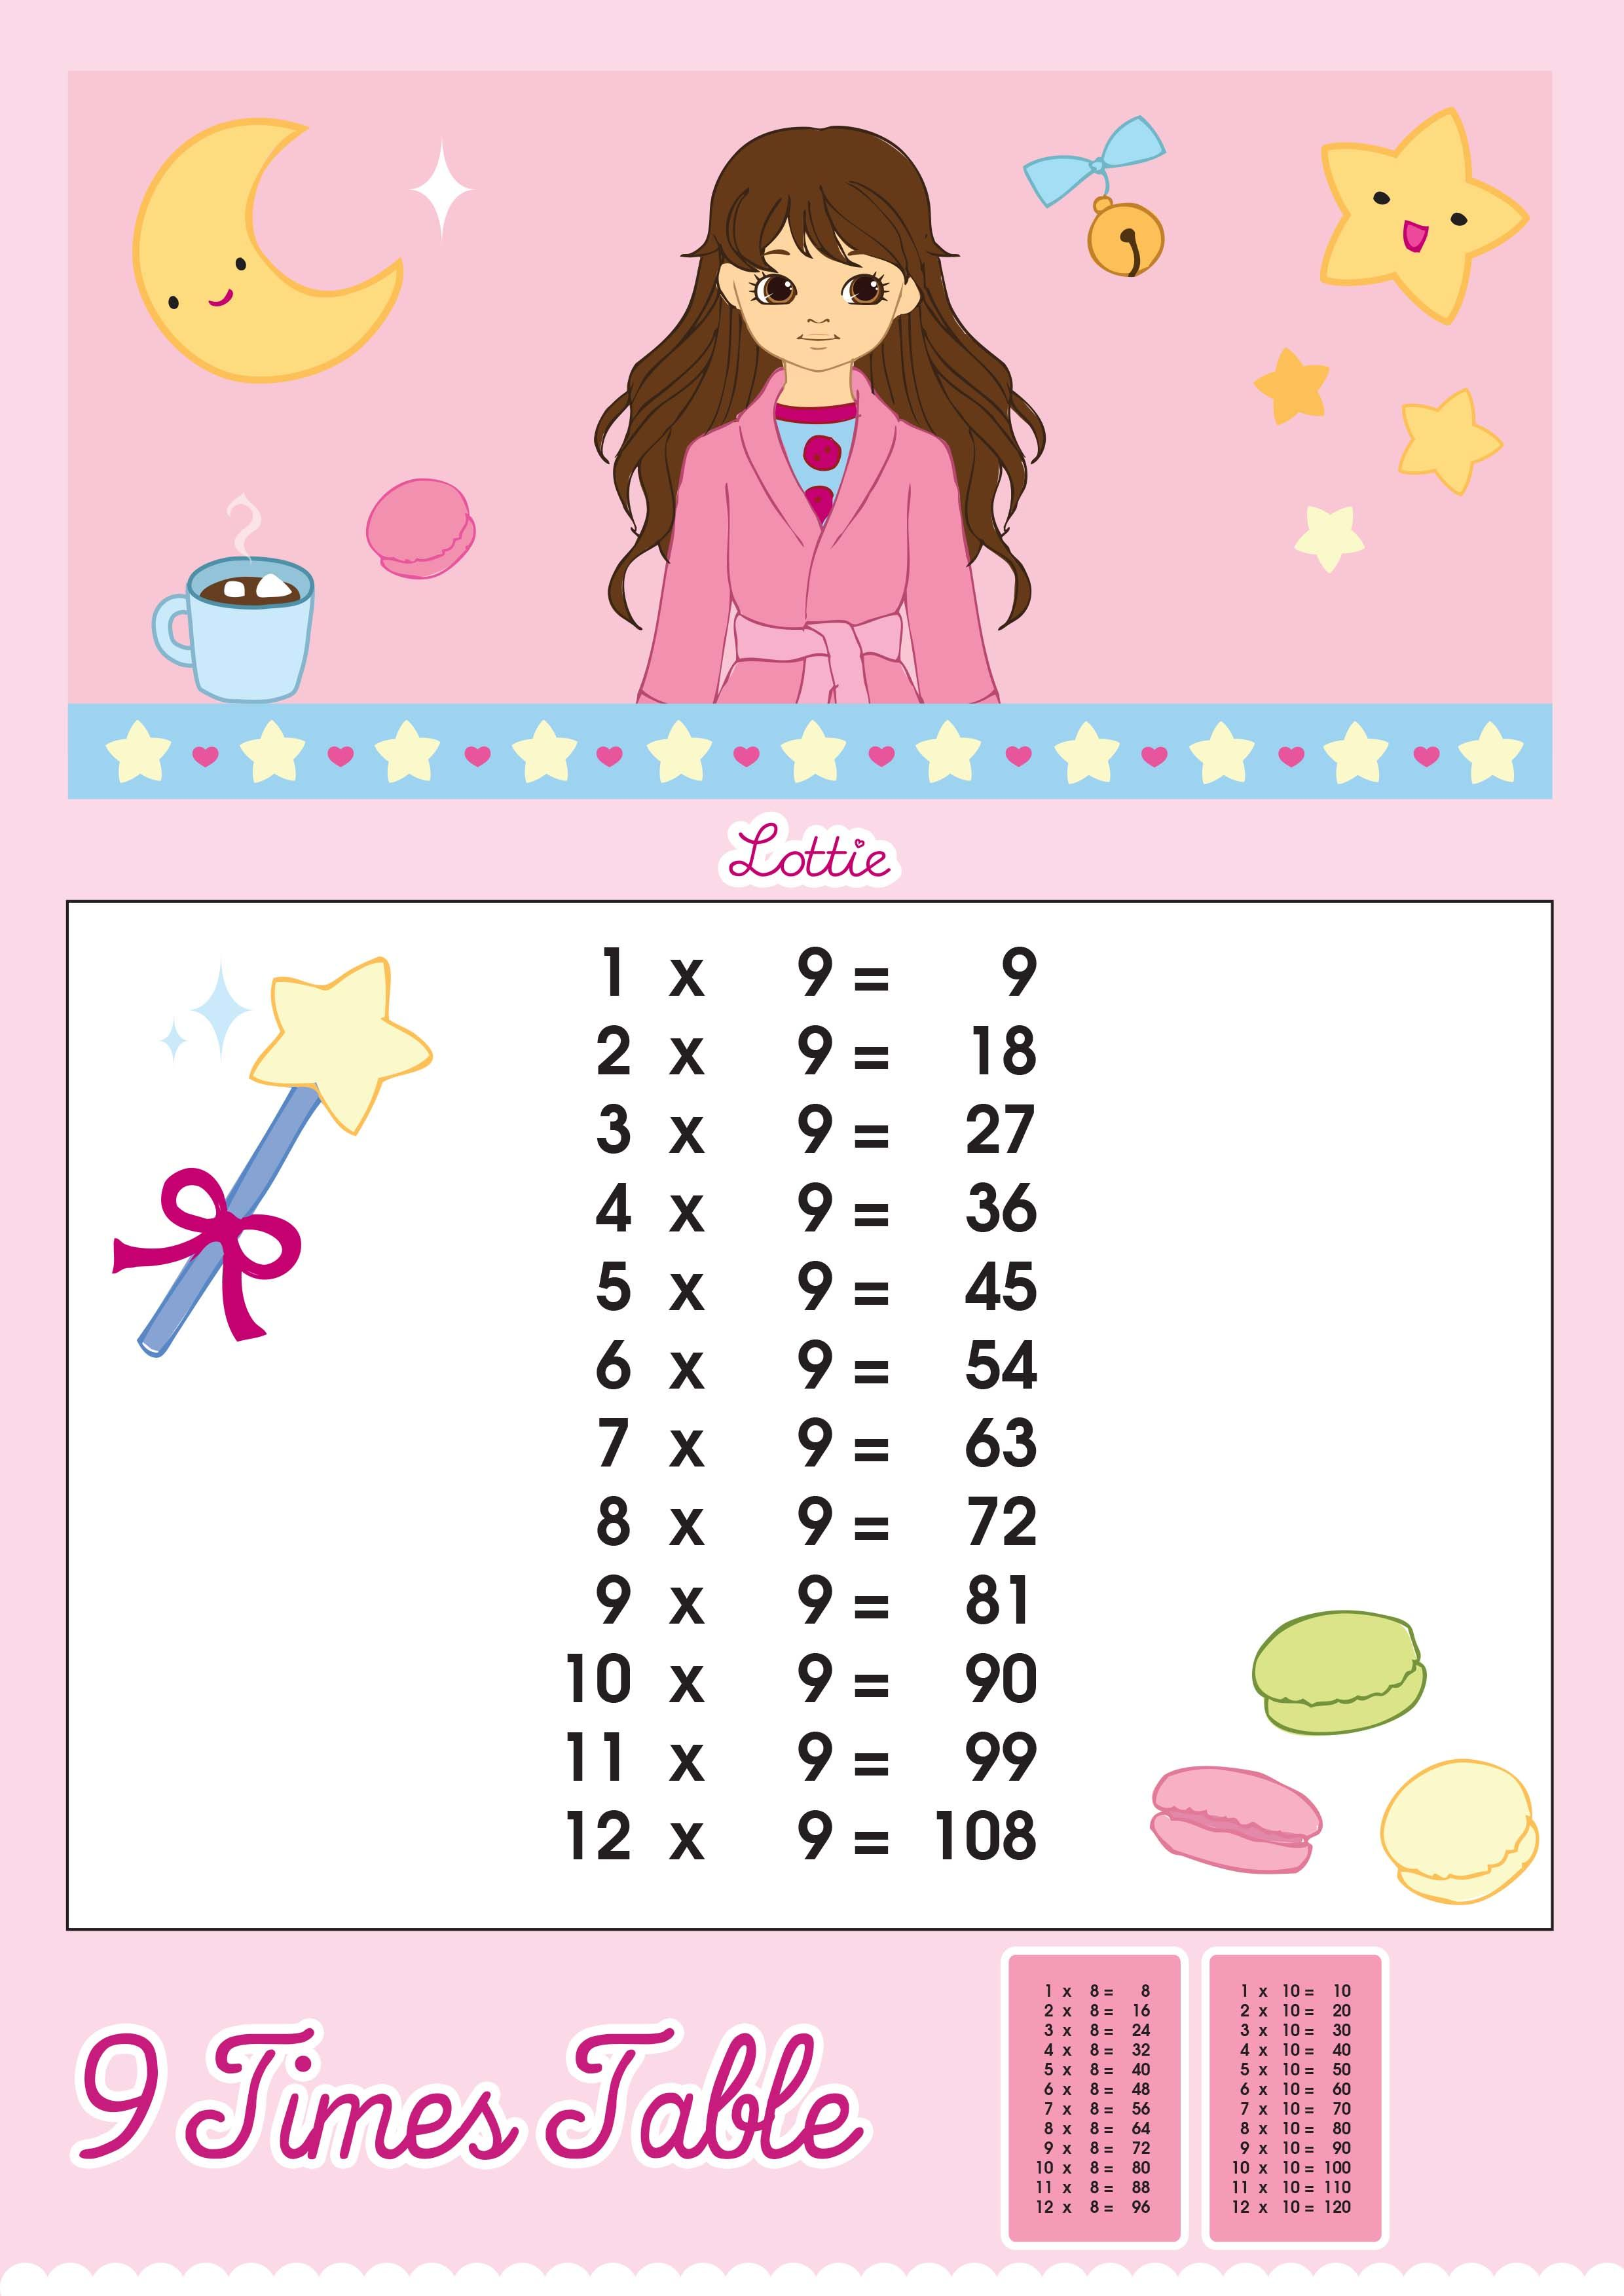 Lottie Doll Printable 9 Times Tables 2 480 3 507 Pixels